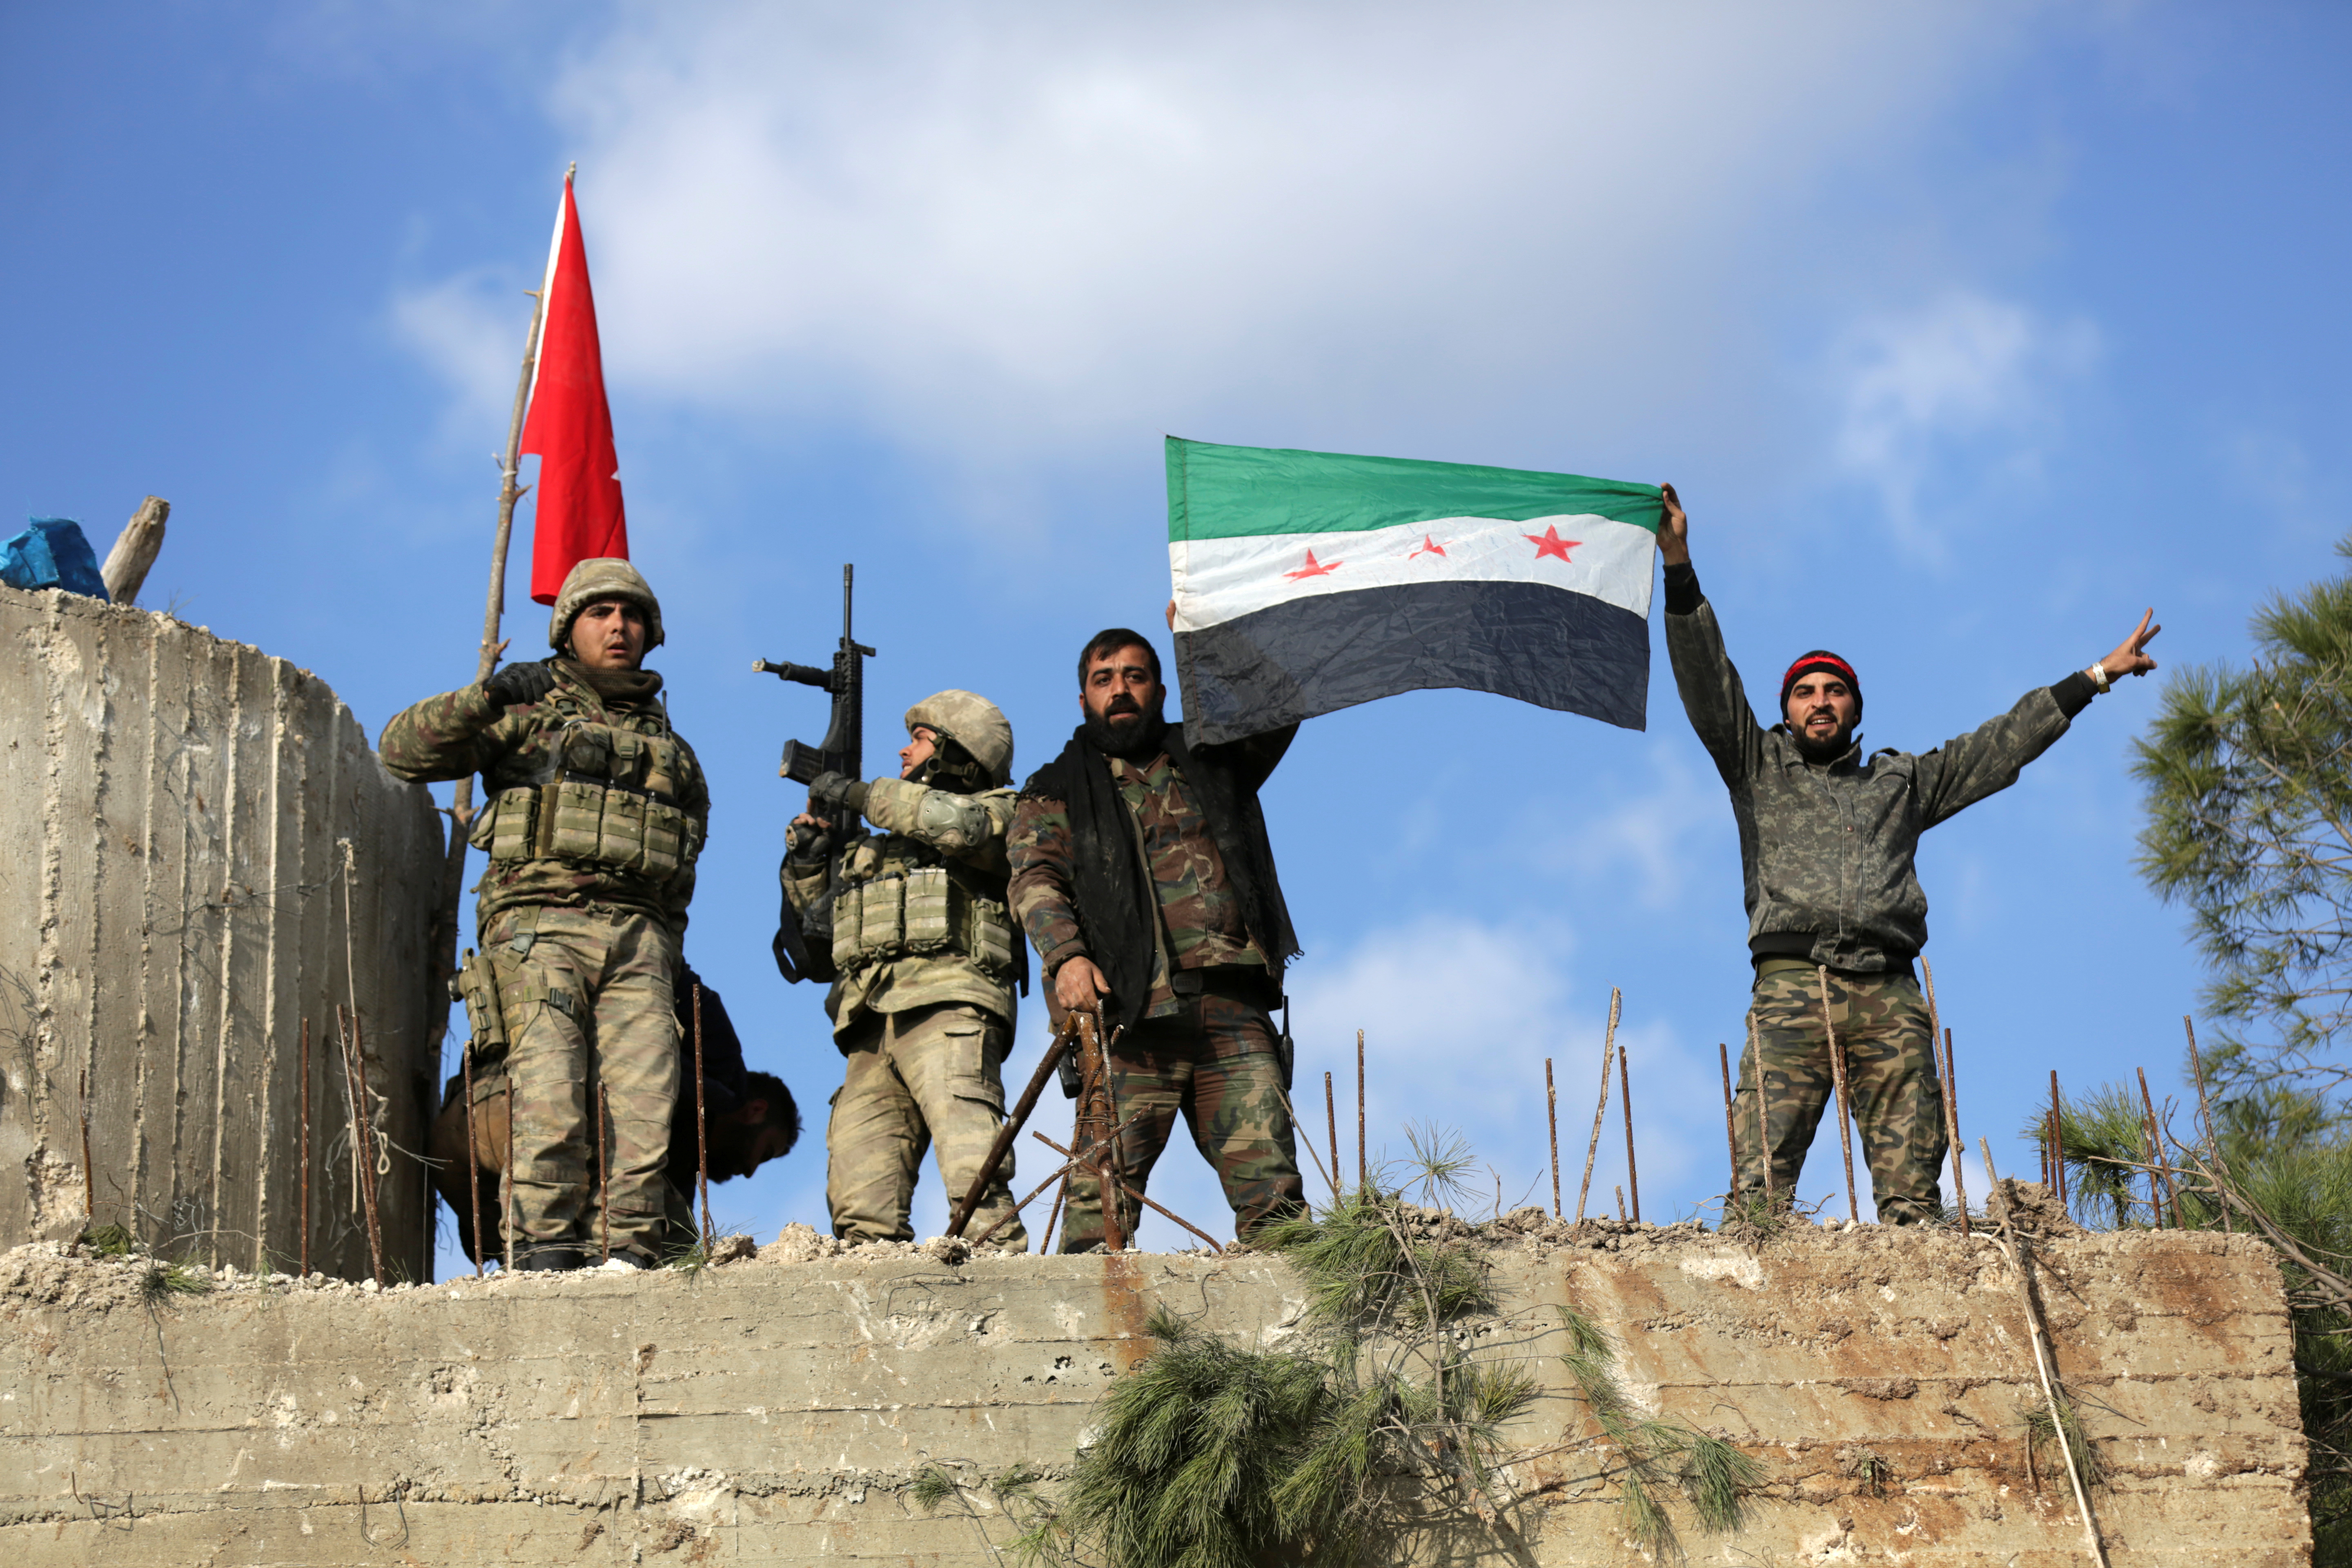 Turkish forces and Free Syrian Army members hold flags on Mount Barsaya, northeast of Afrin, Syria January 28, 2018. REUTERS/ Khalil Ashawi